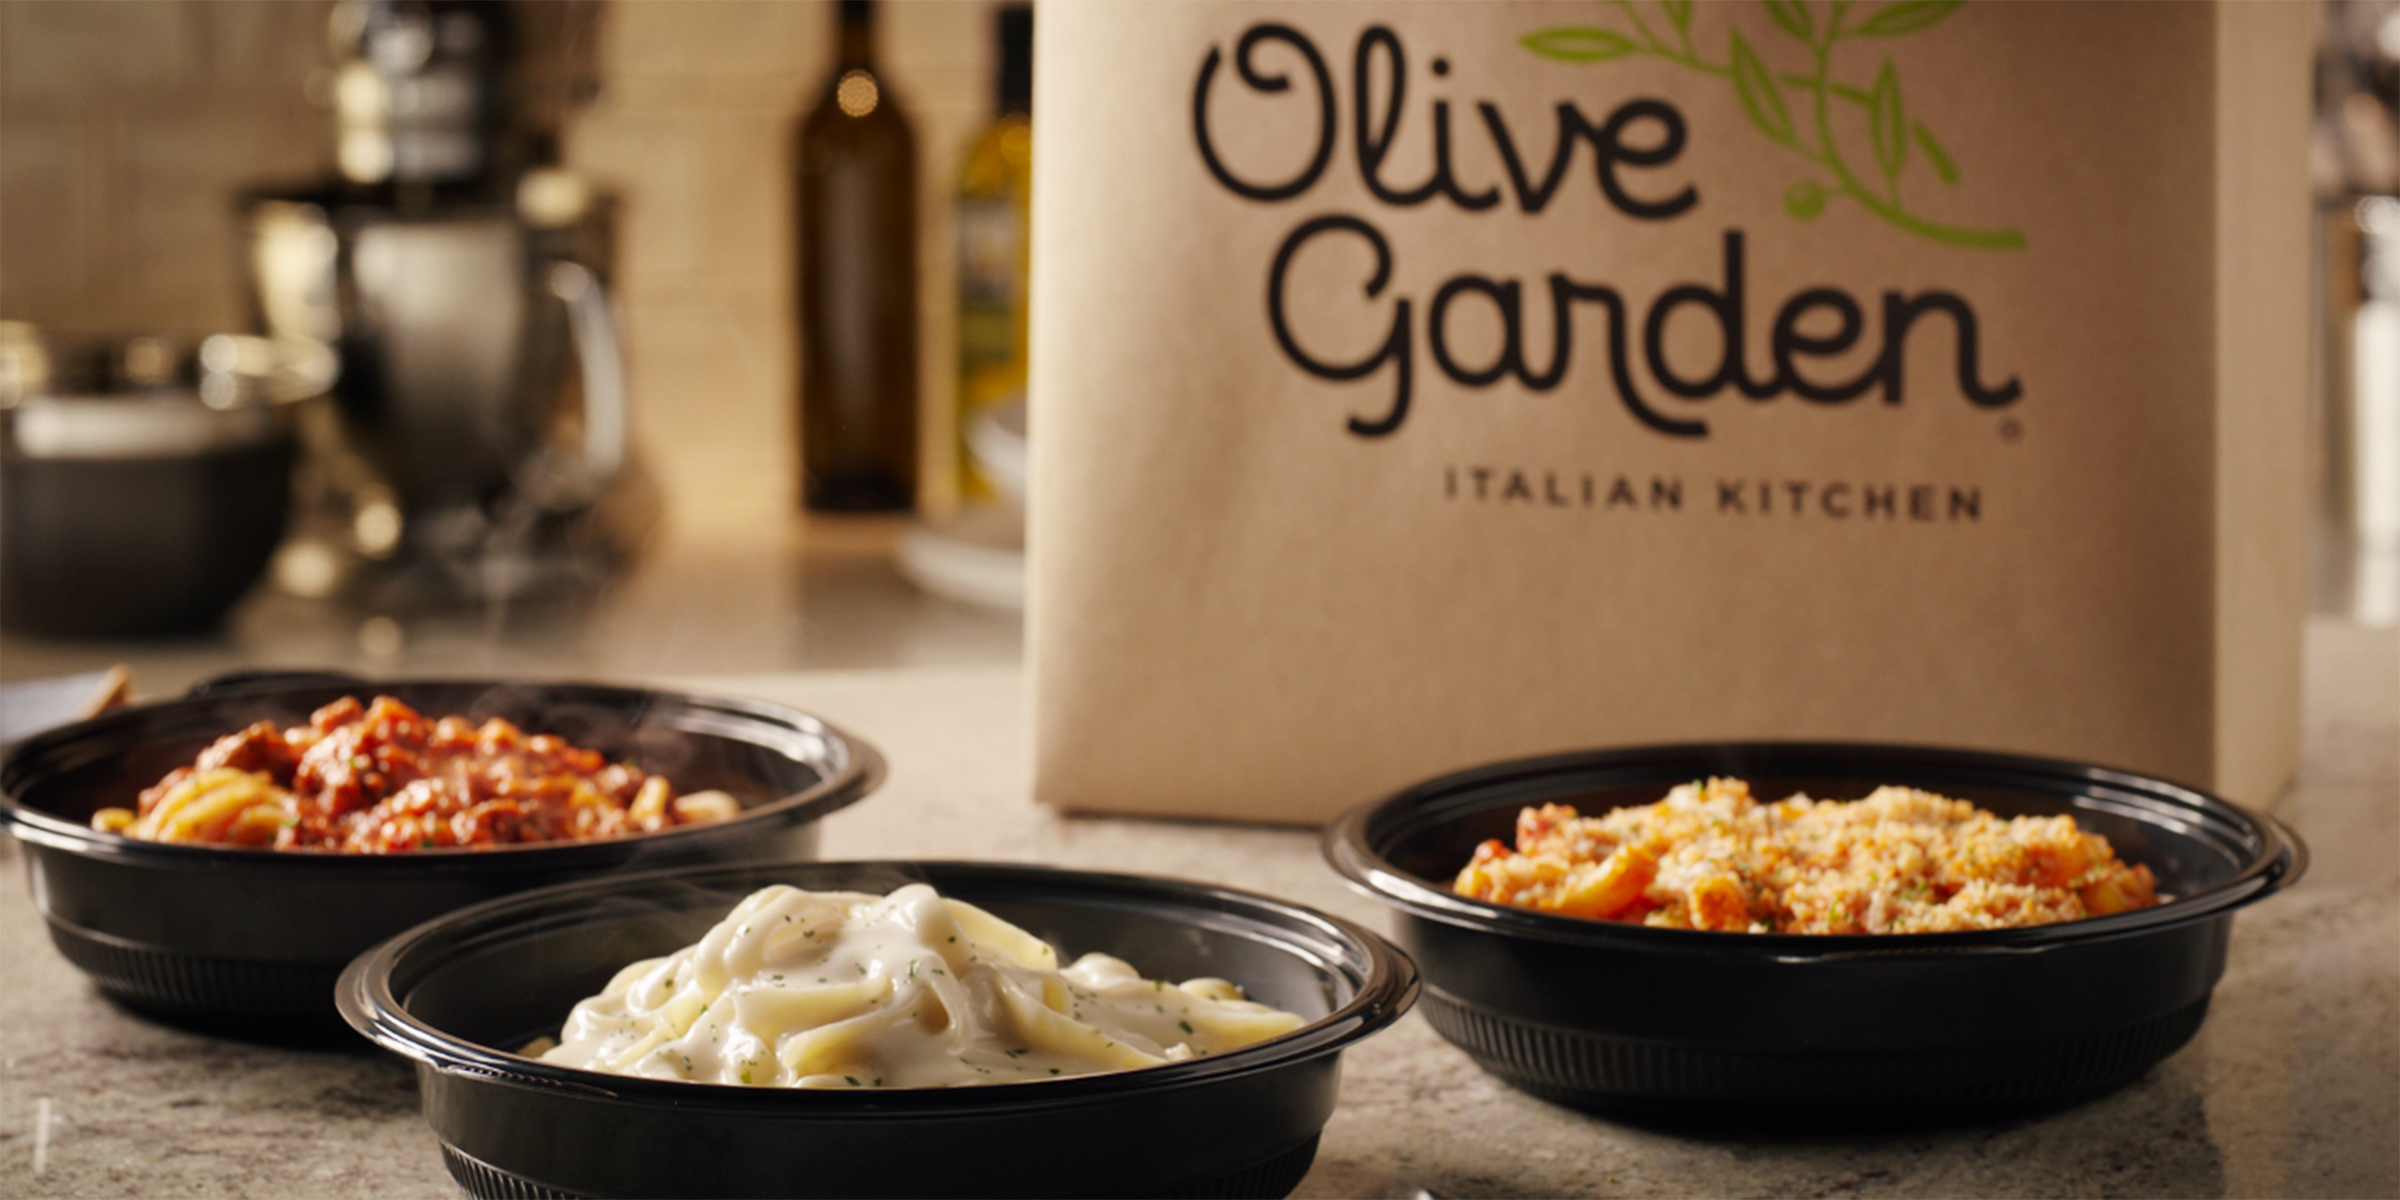 Olive Garden Is Offering Free To Go Meals Amid Coronavirus Outbreak